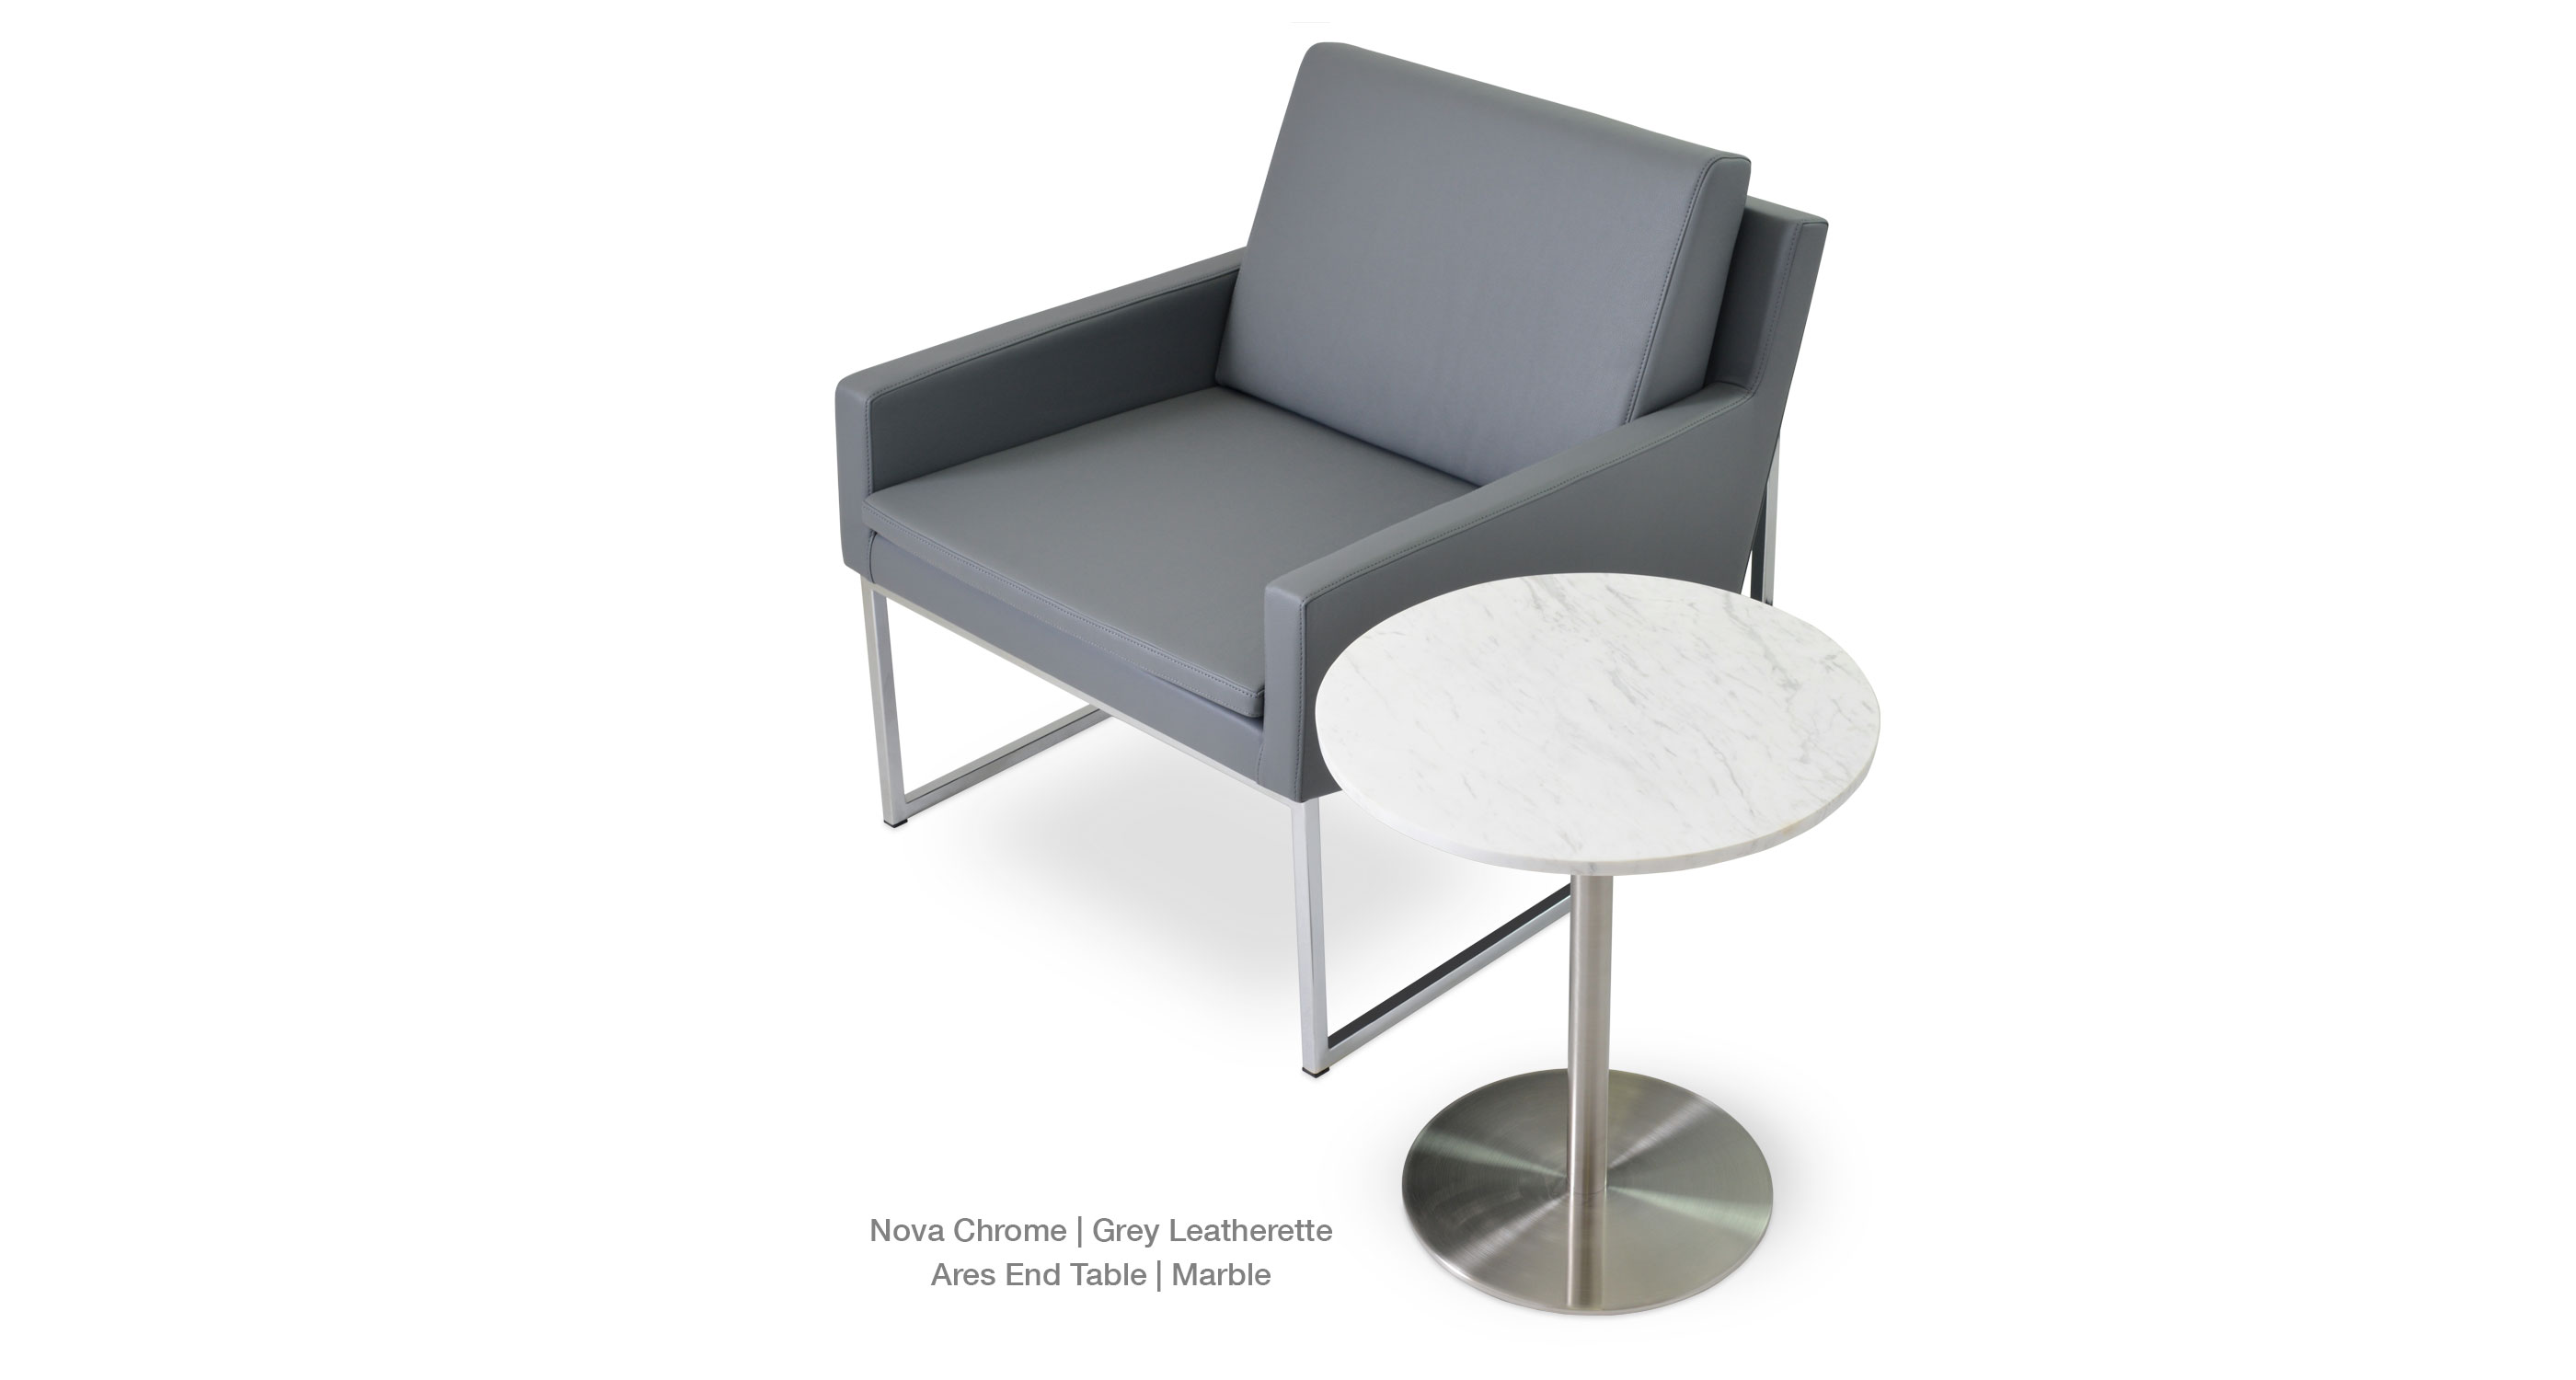 Nova Chrome Grey Leatherette - Ares